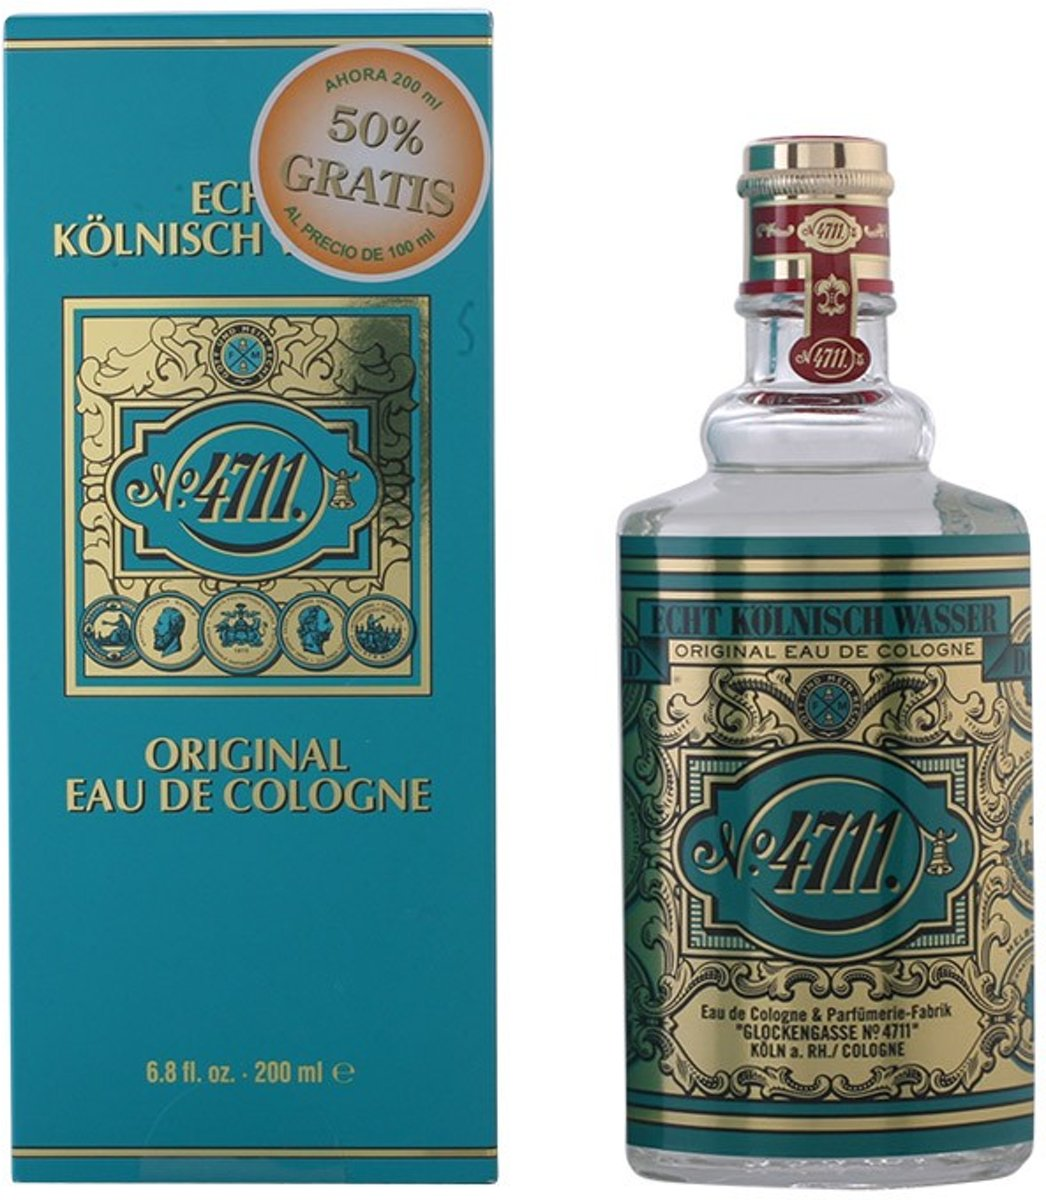 MULTI BUNDEL 3 stuks 4711 Eau de Cologne flacon 200 ml